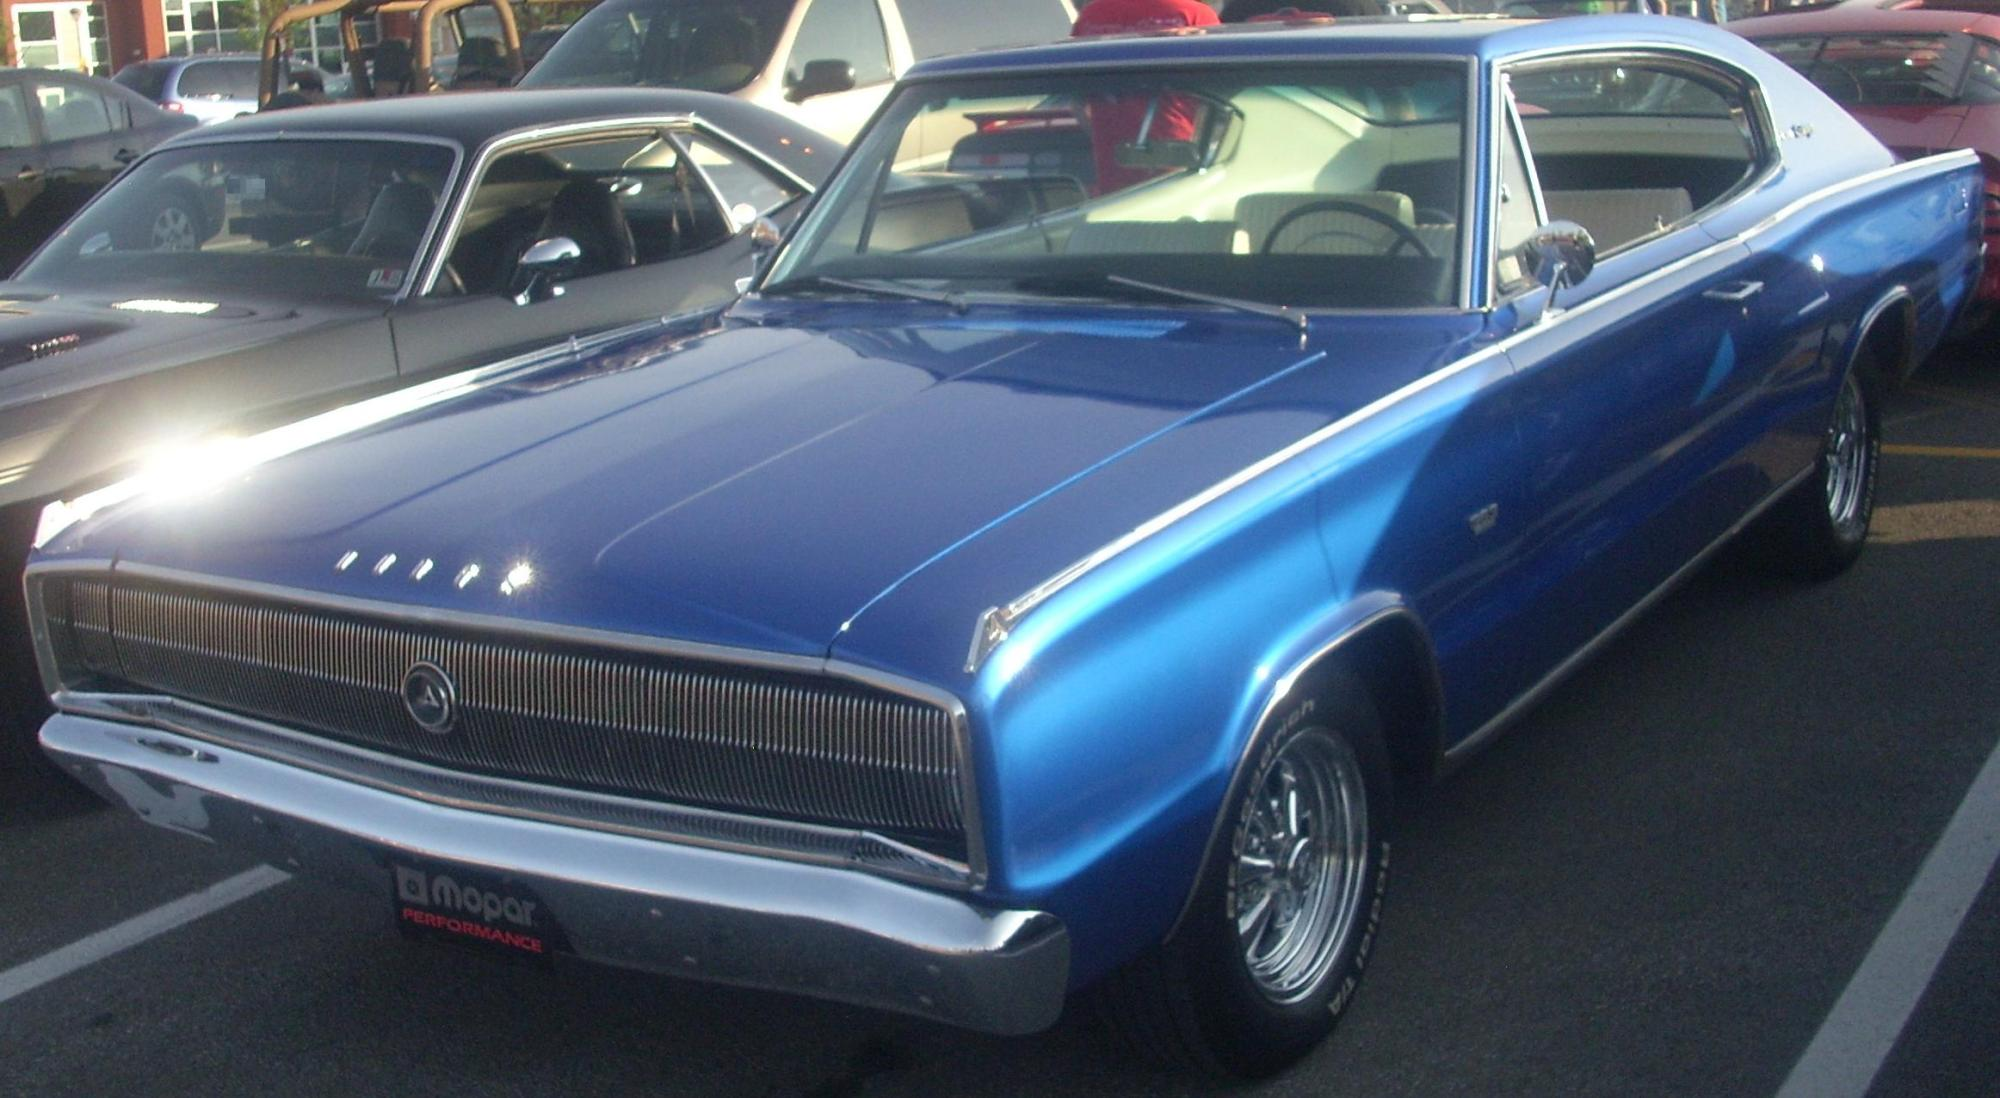 hight resolution of file dodge charger 383 centropolis laval 10 jpg